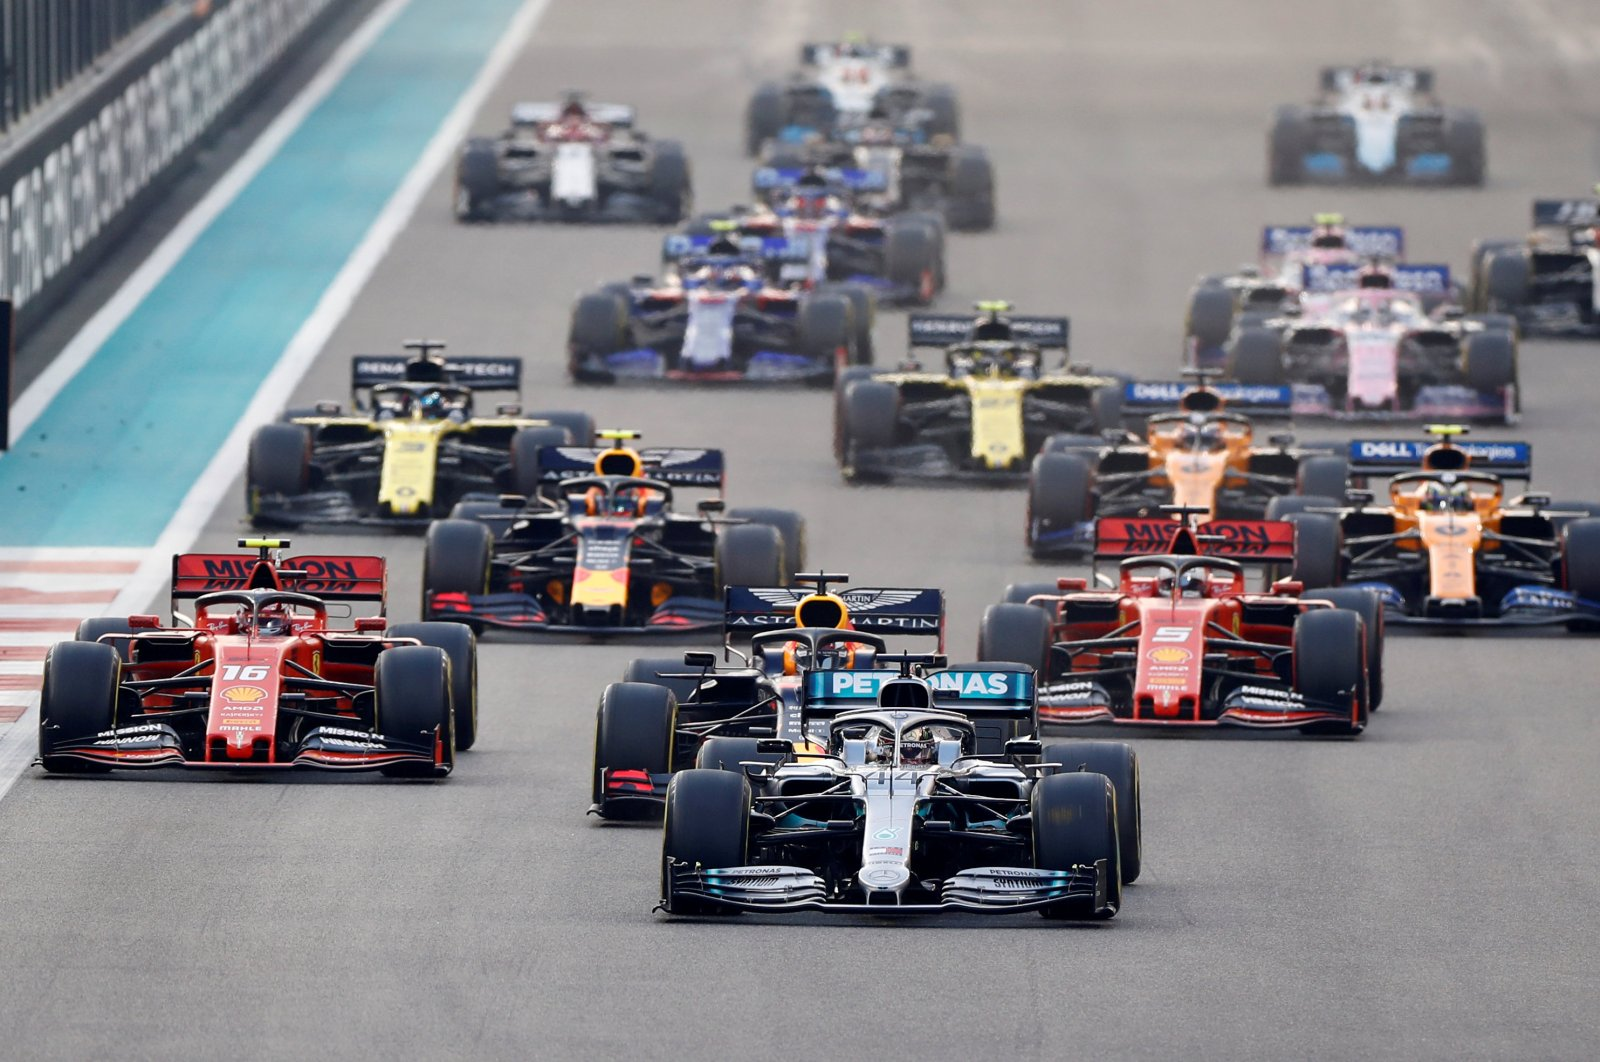 Mercedes' Lewis Hamilton leads at the start of the race in Abu Dhabi, United Arab Emirates, Dec. 1, 2019. (REUTERS Photo)